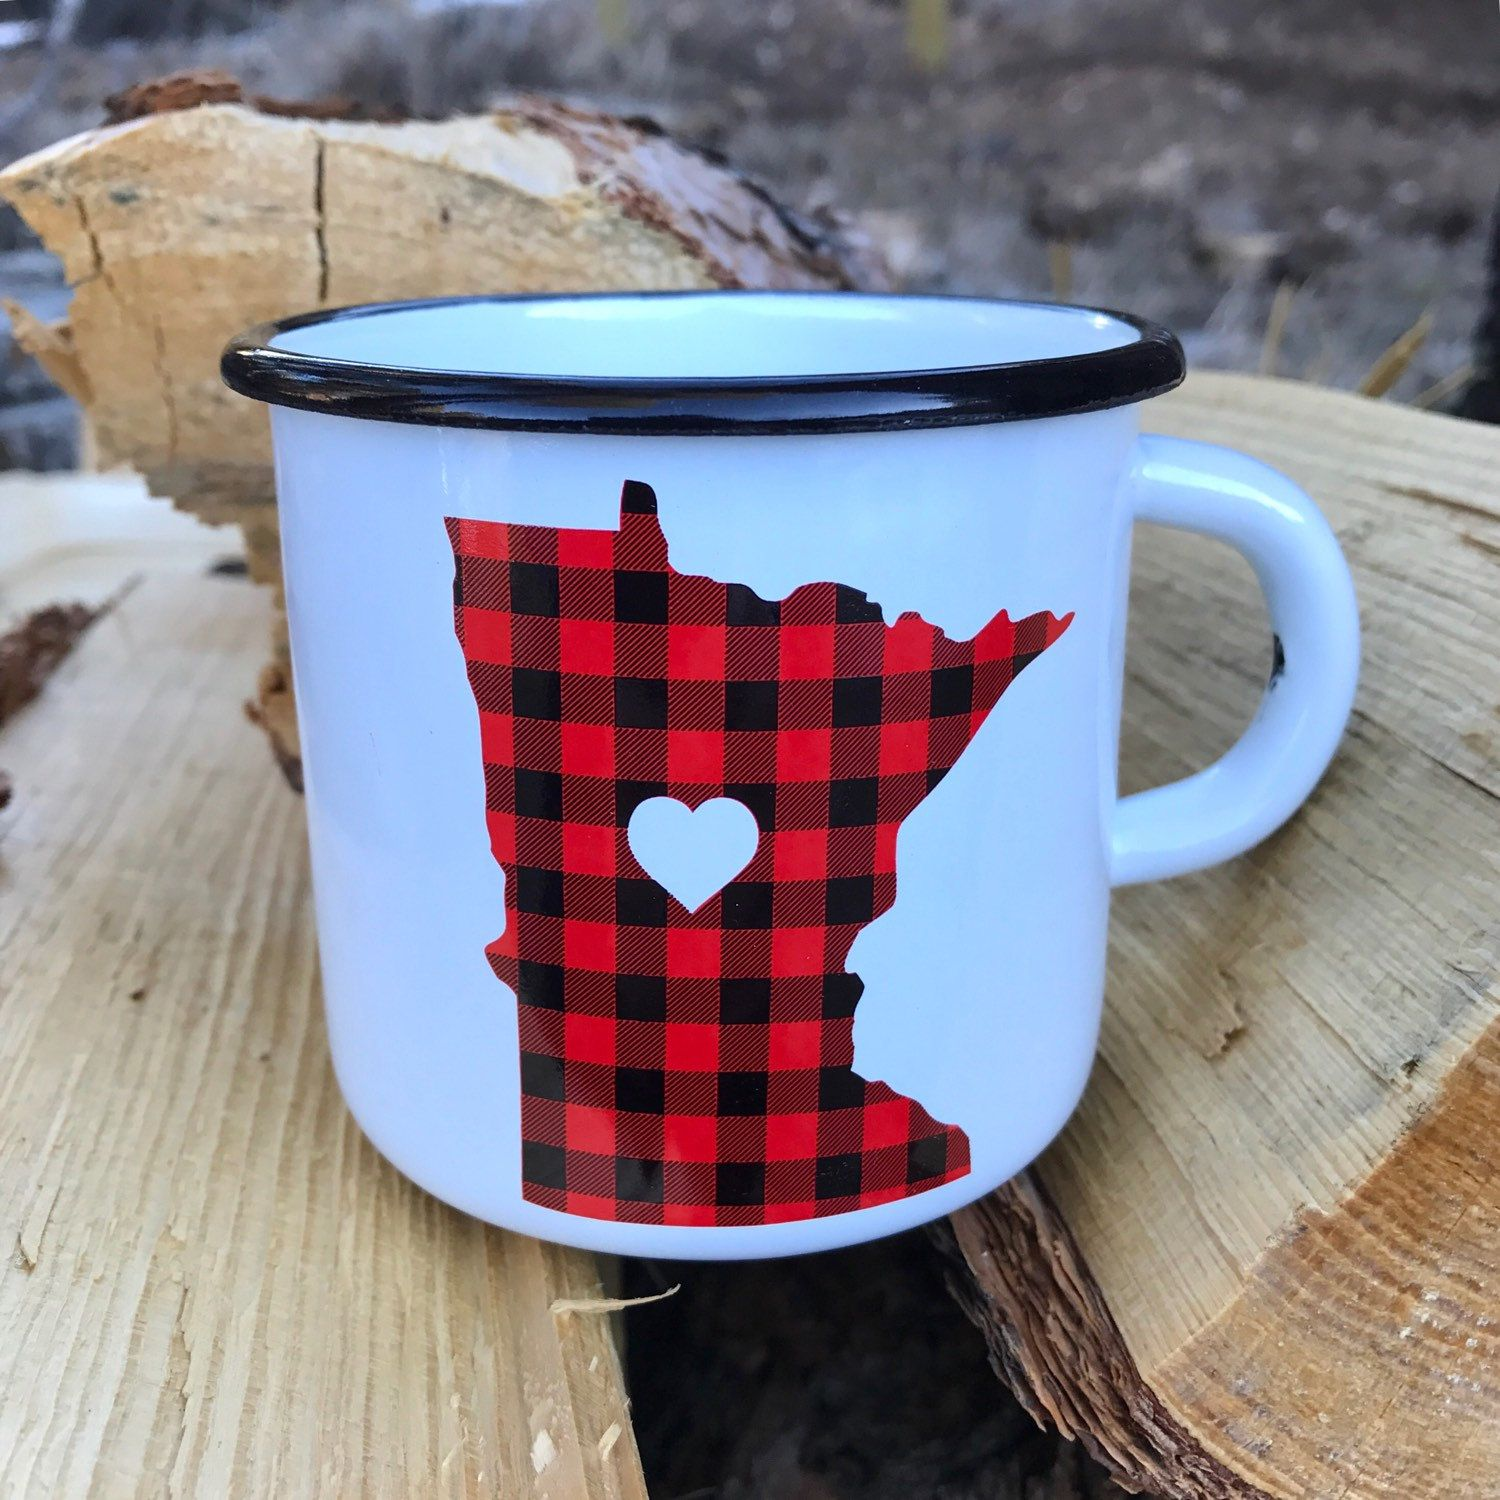 New Minnesota red flannel camping mugs are now listed in